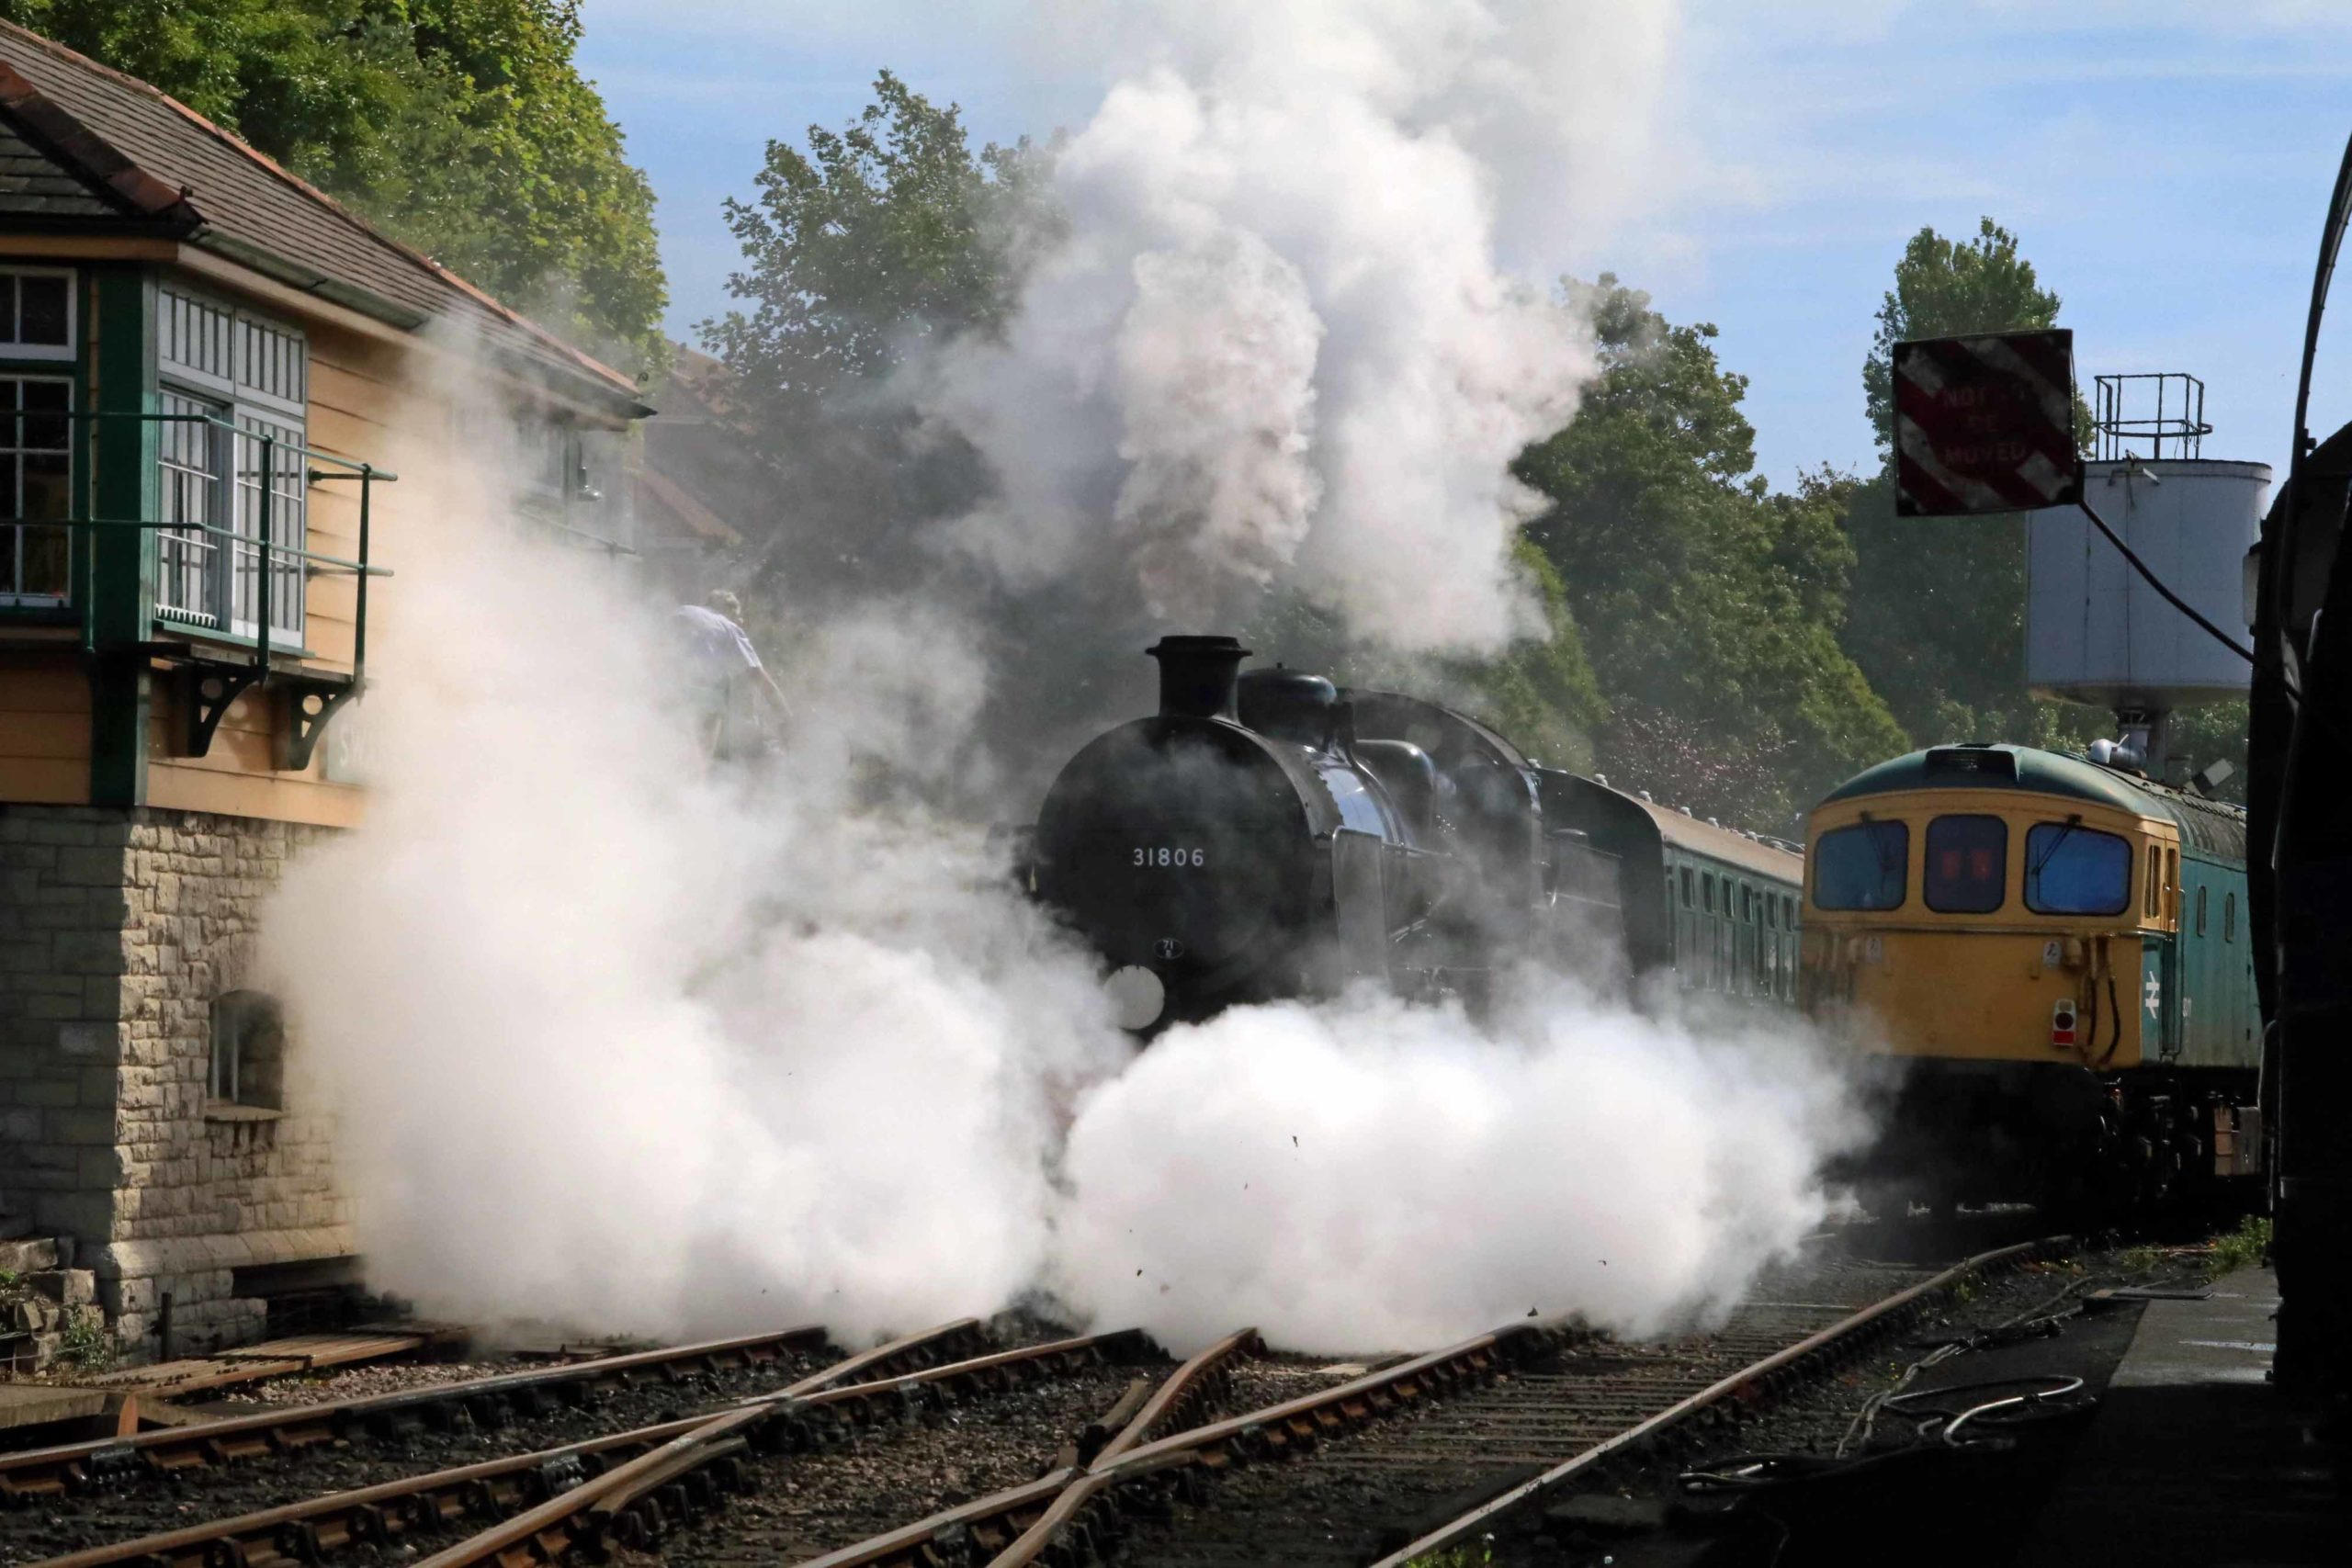 Sound of steam train whistle returns to Swanage again ...